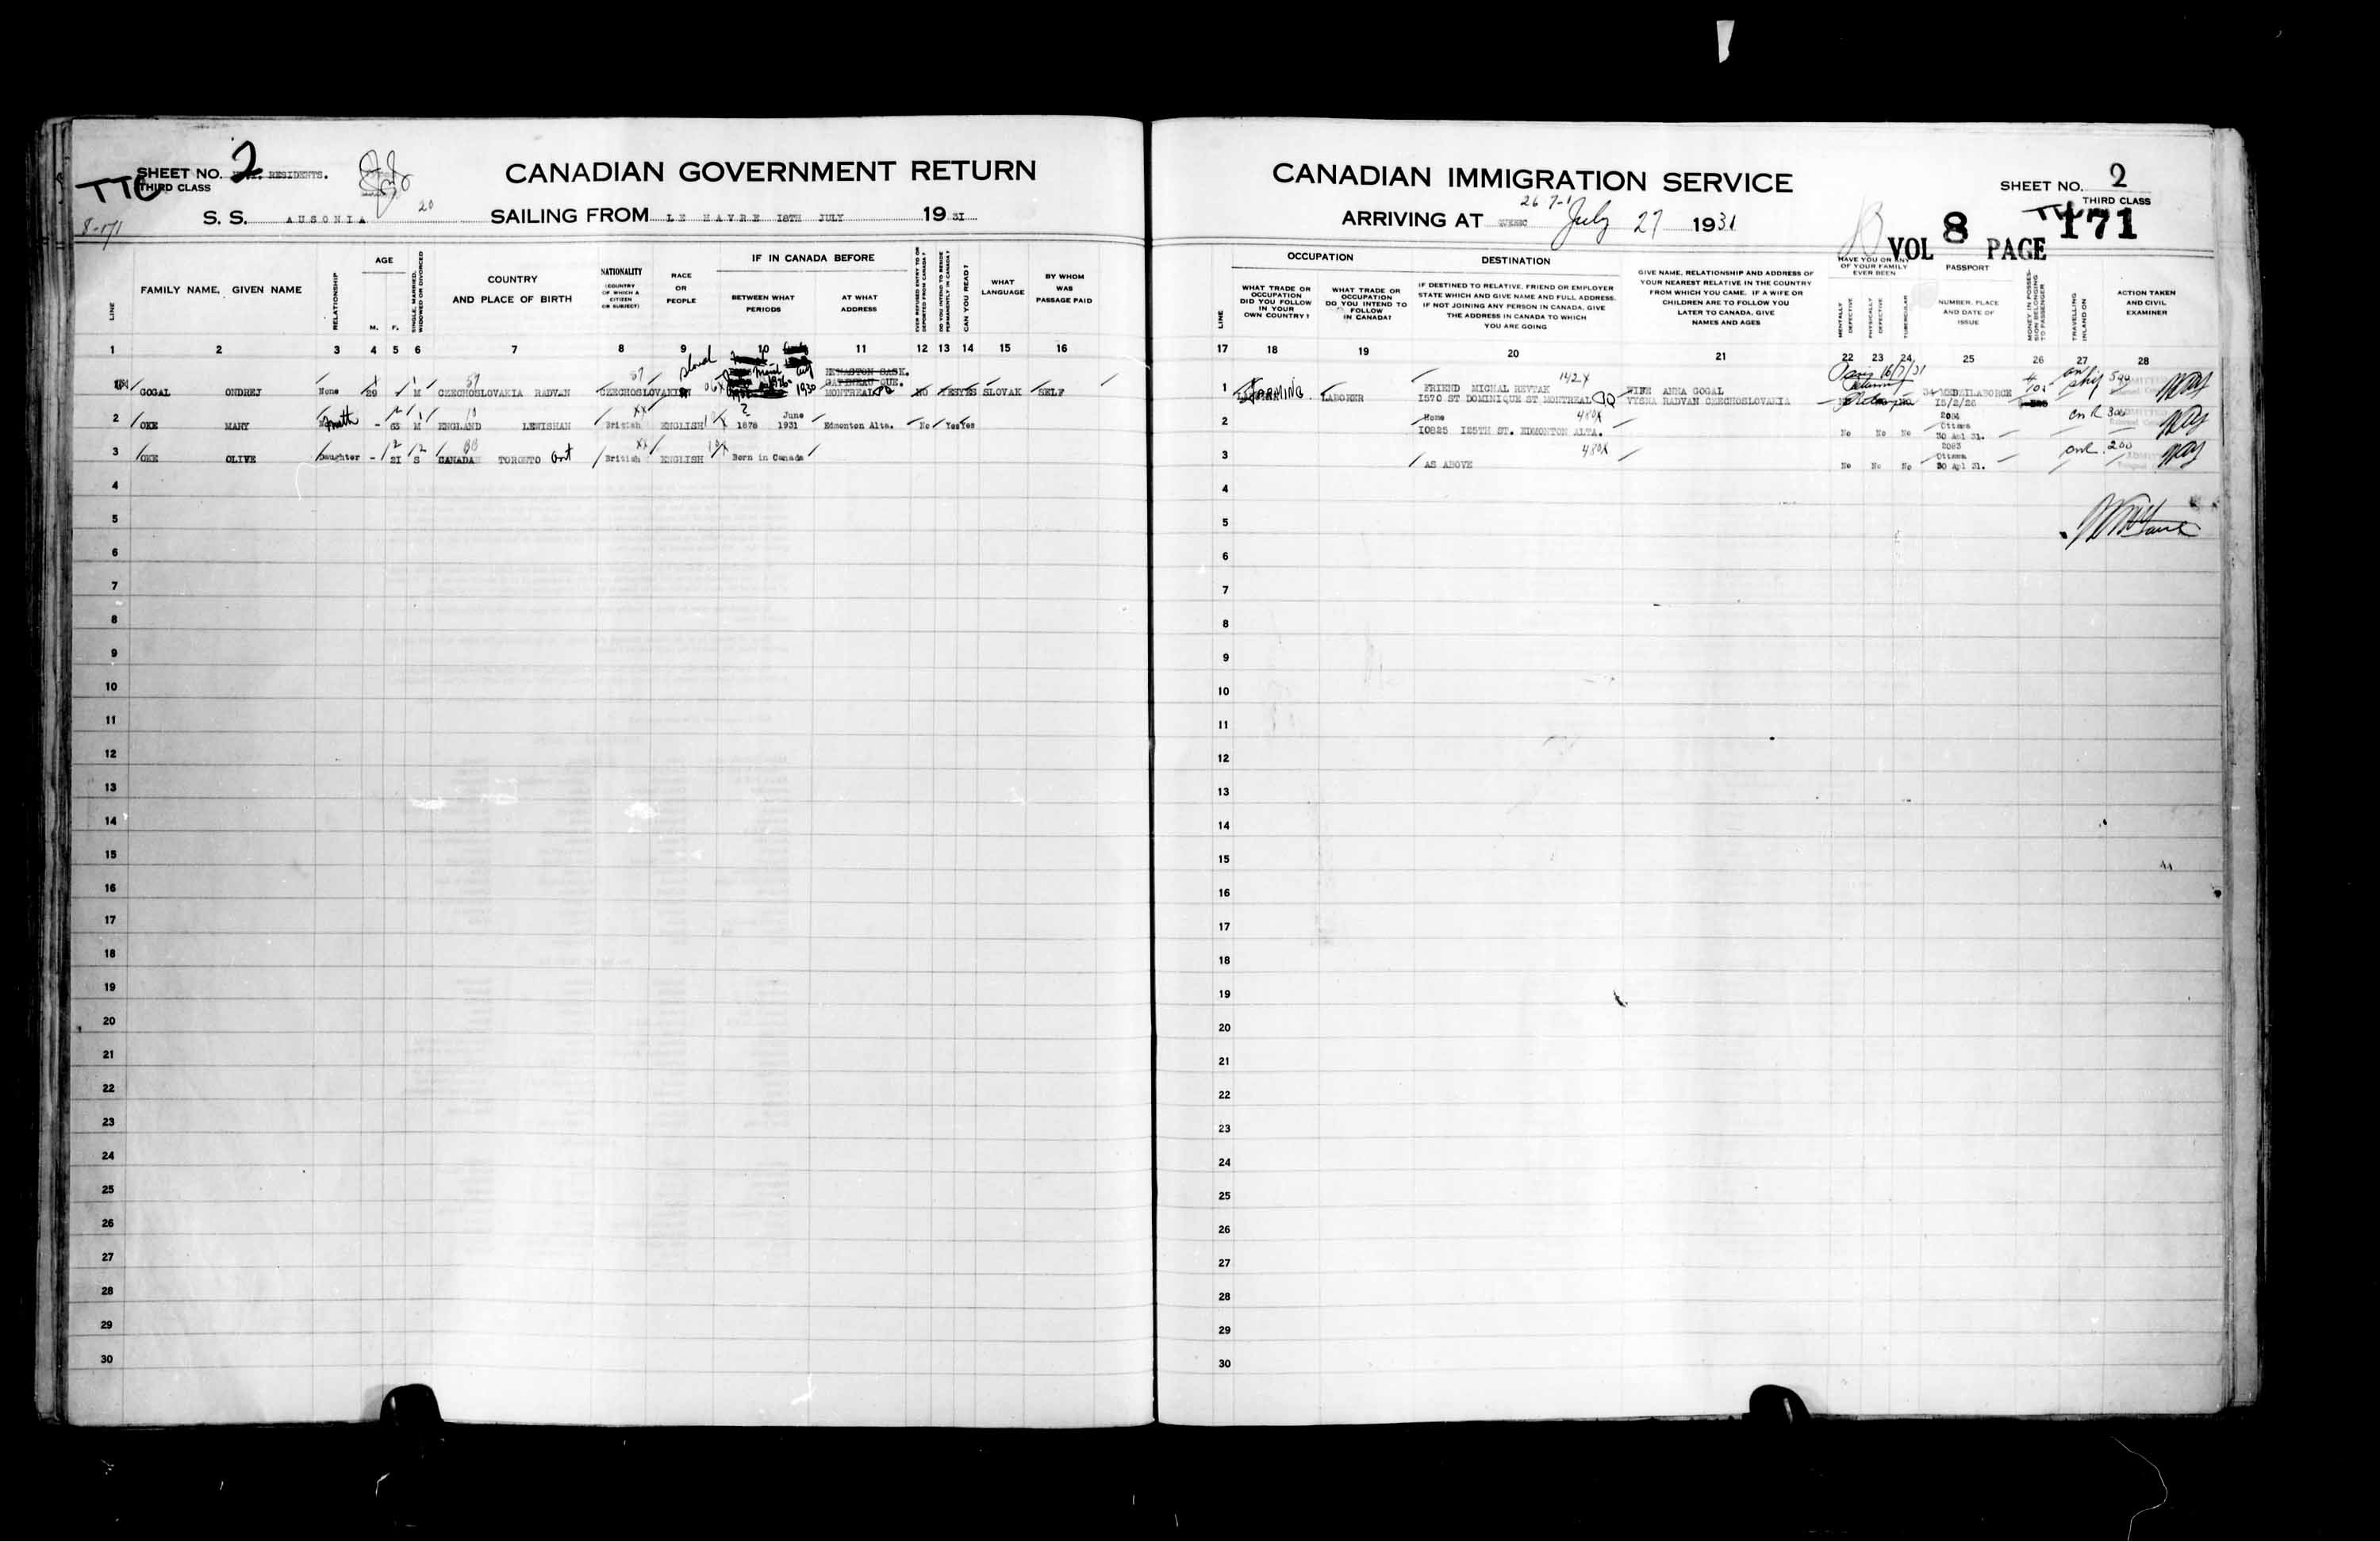 Title: Passenger Lists: Quebec City (1925-1935) - Mikan Number: 134839 - Microform: t-14773